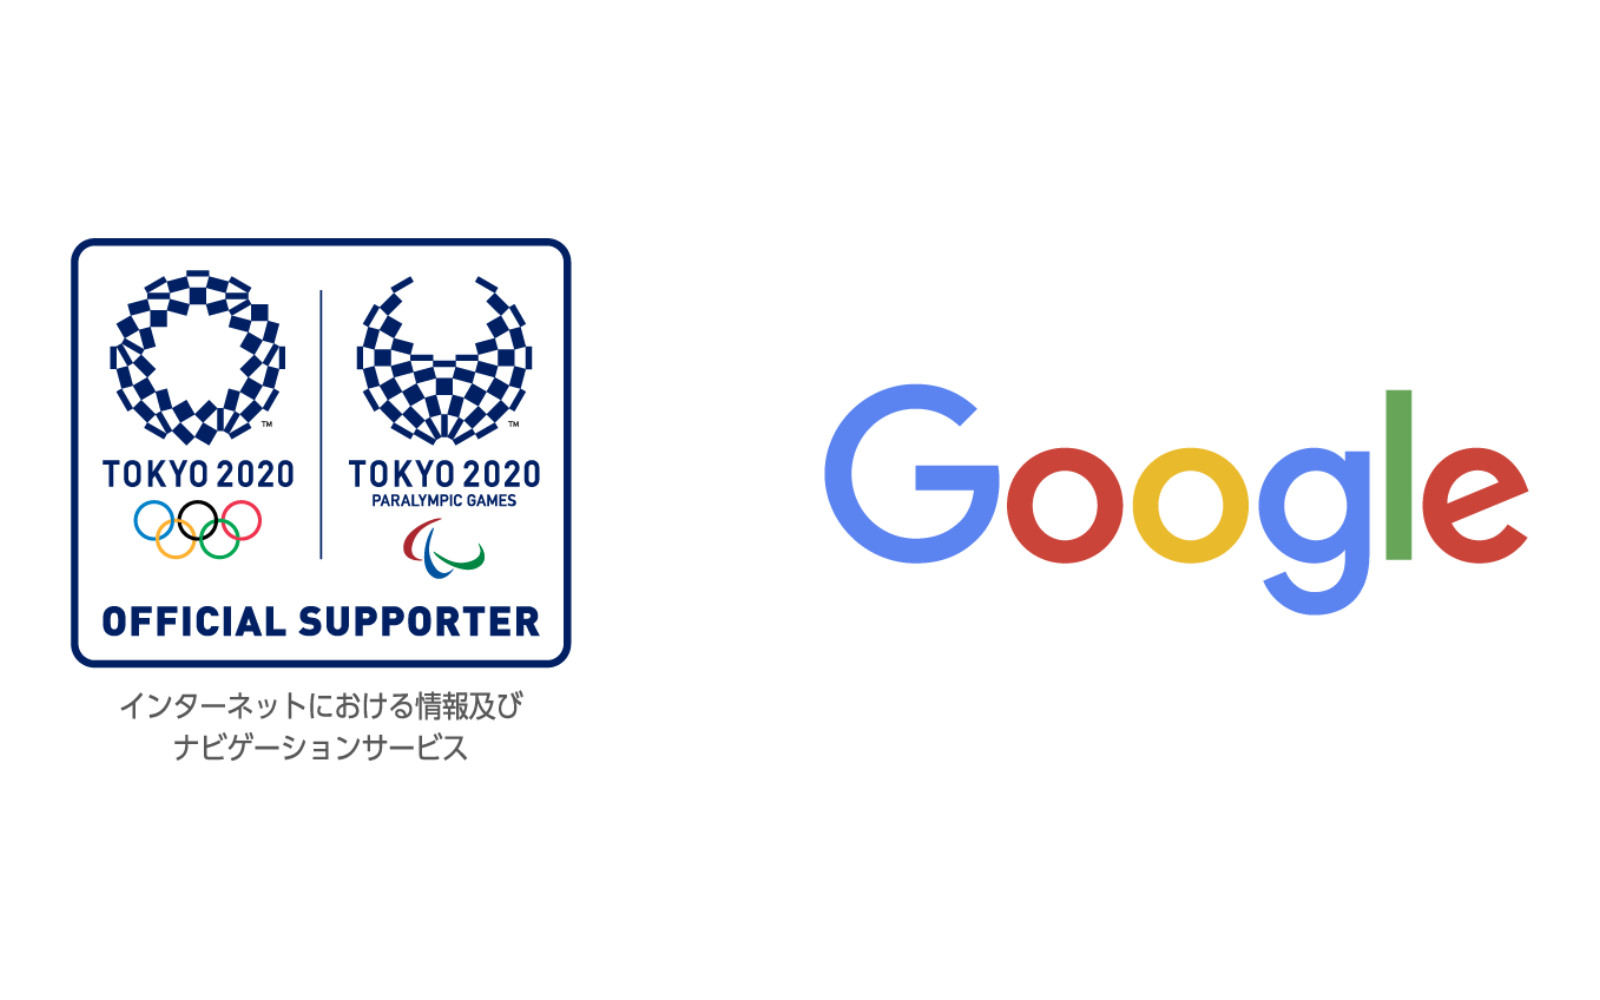 Google Becomes Official Sponsor of Tokyo2020